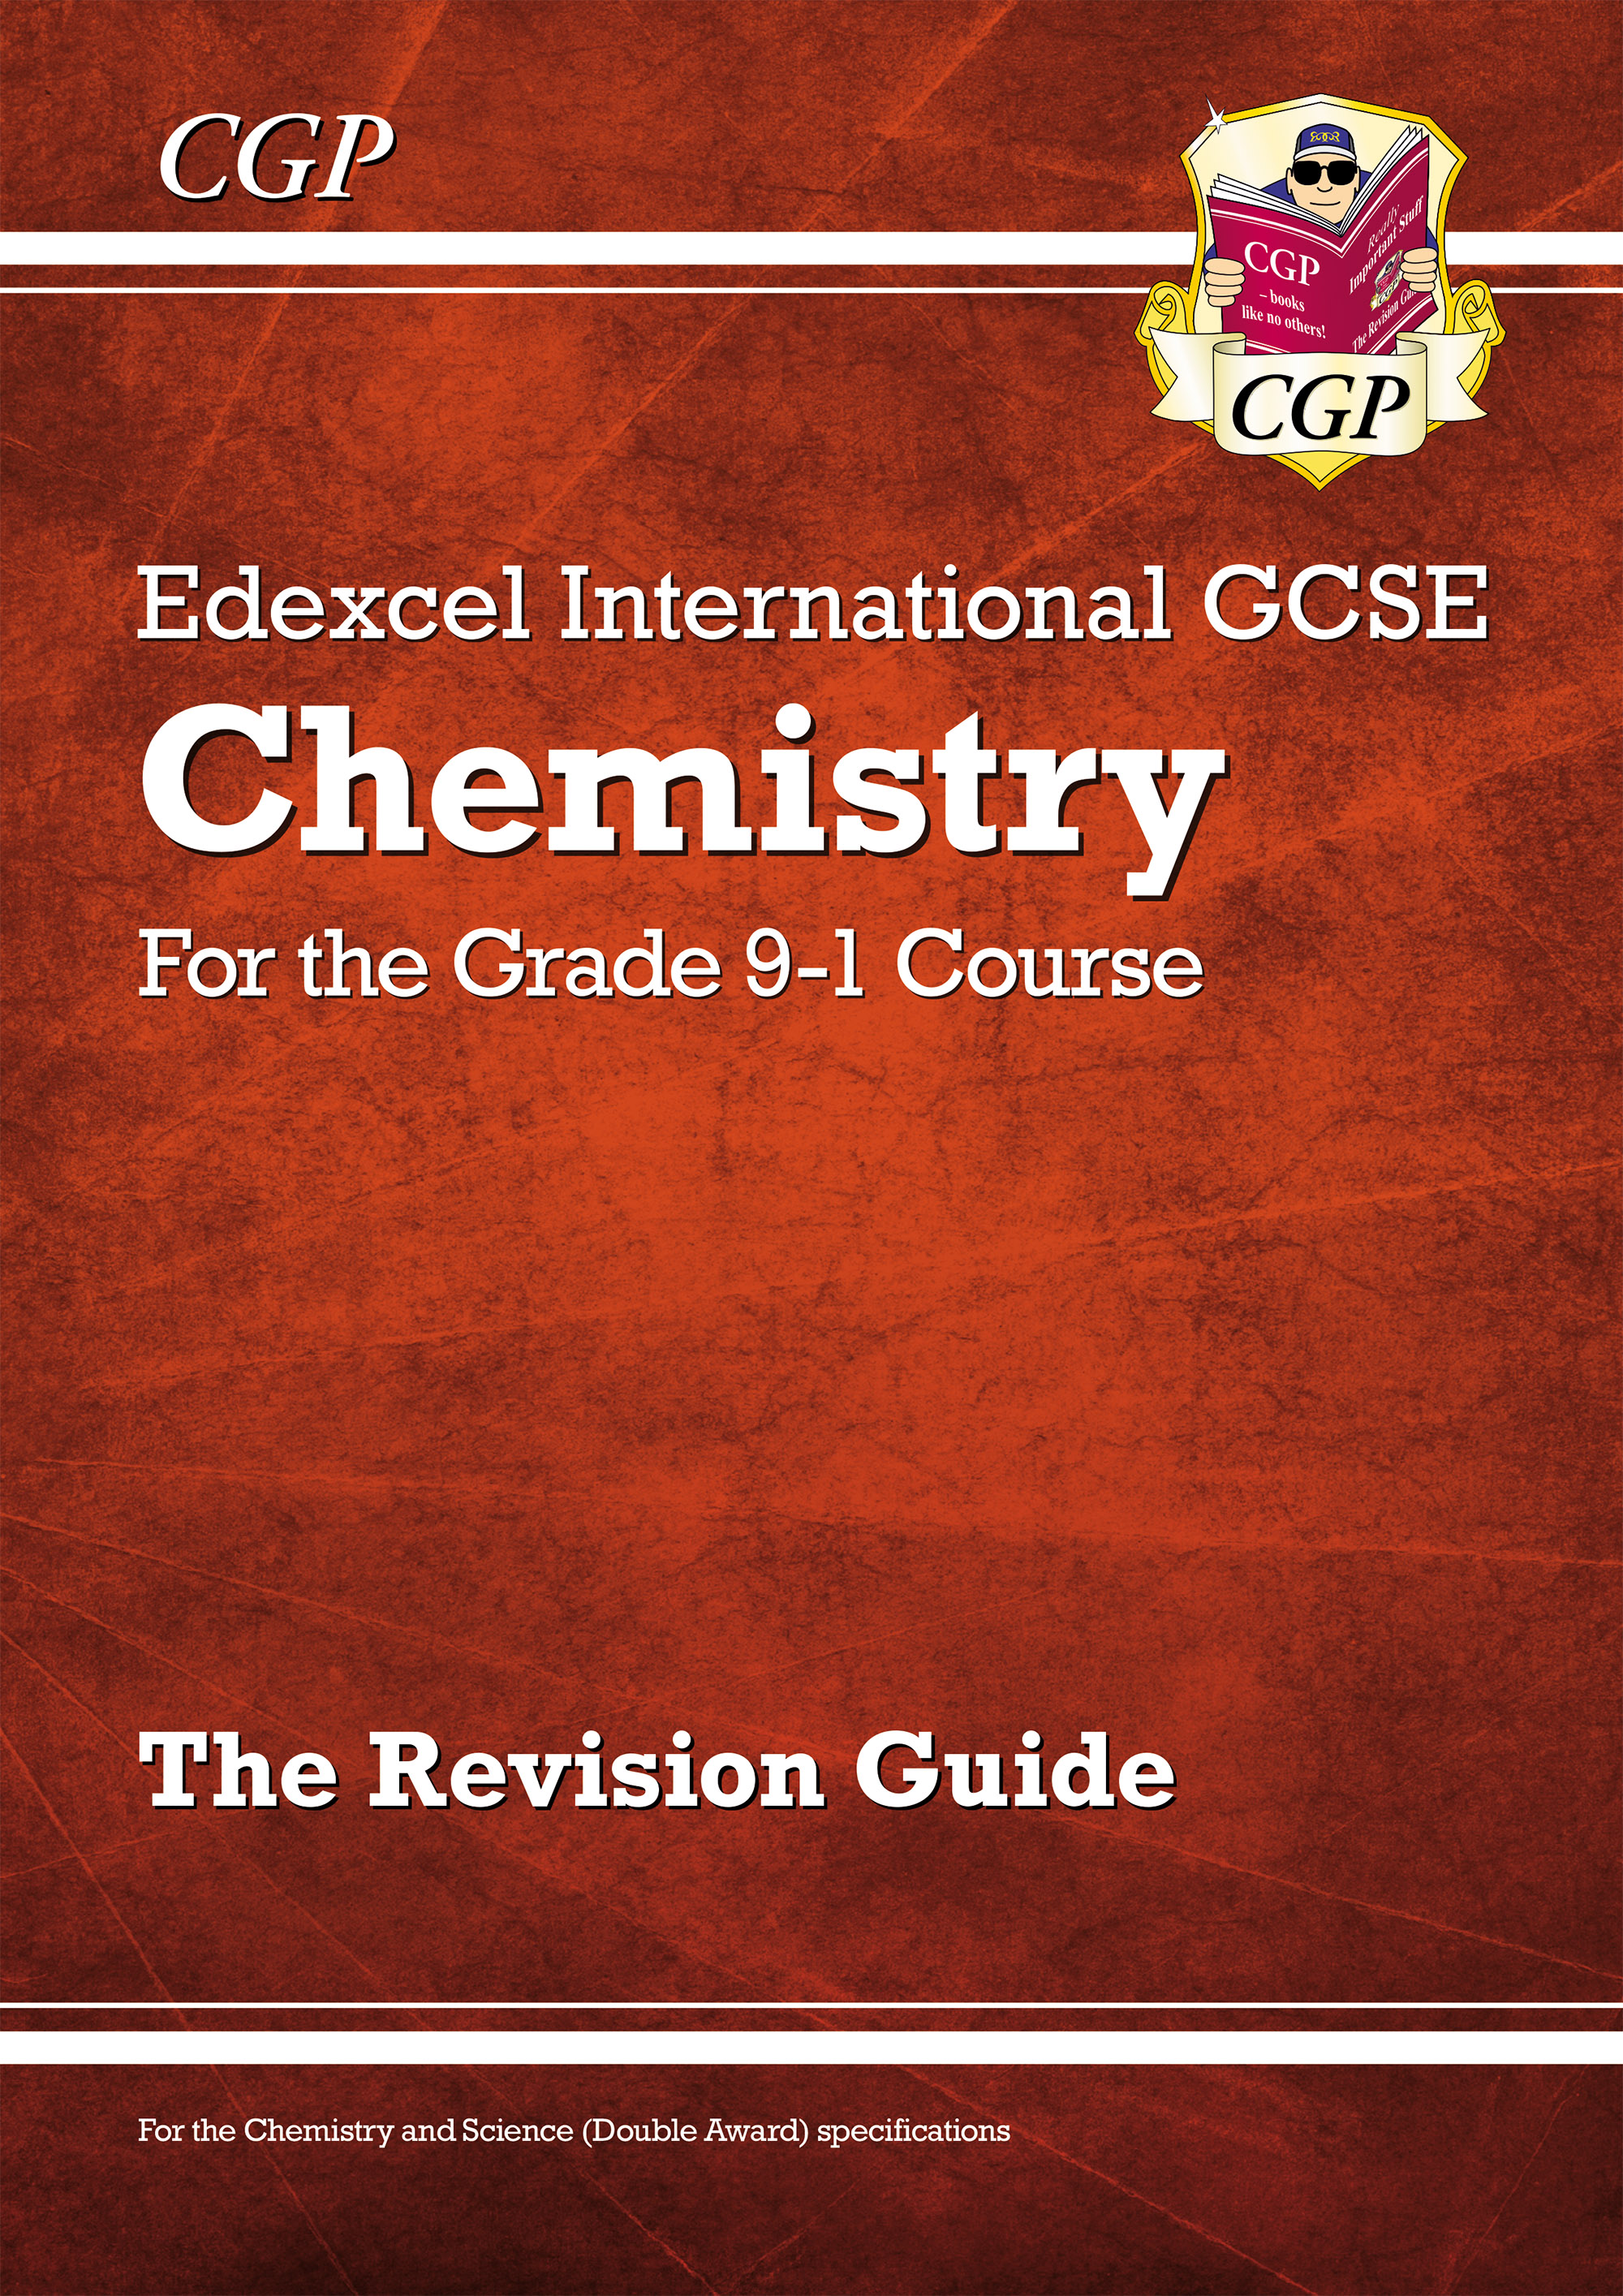 CERI42DK - New Grade 9-1 Edexcel International GCSE Chemistry: Revision Guide